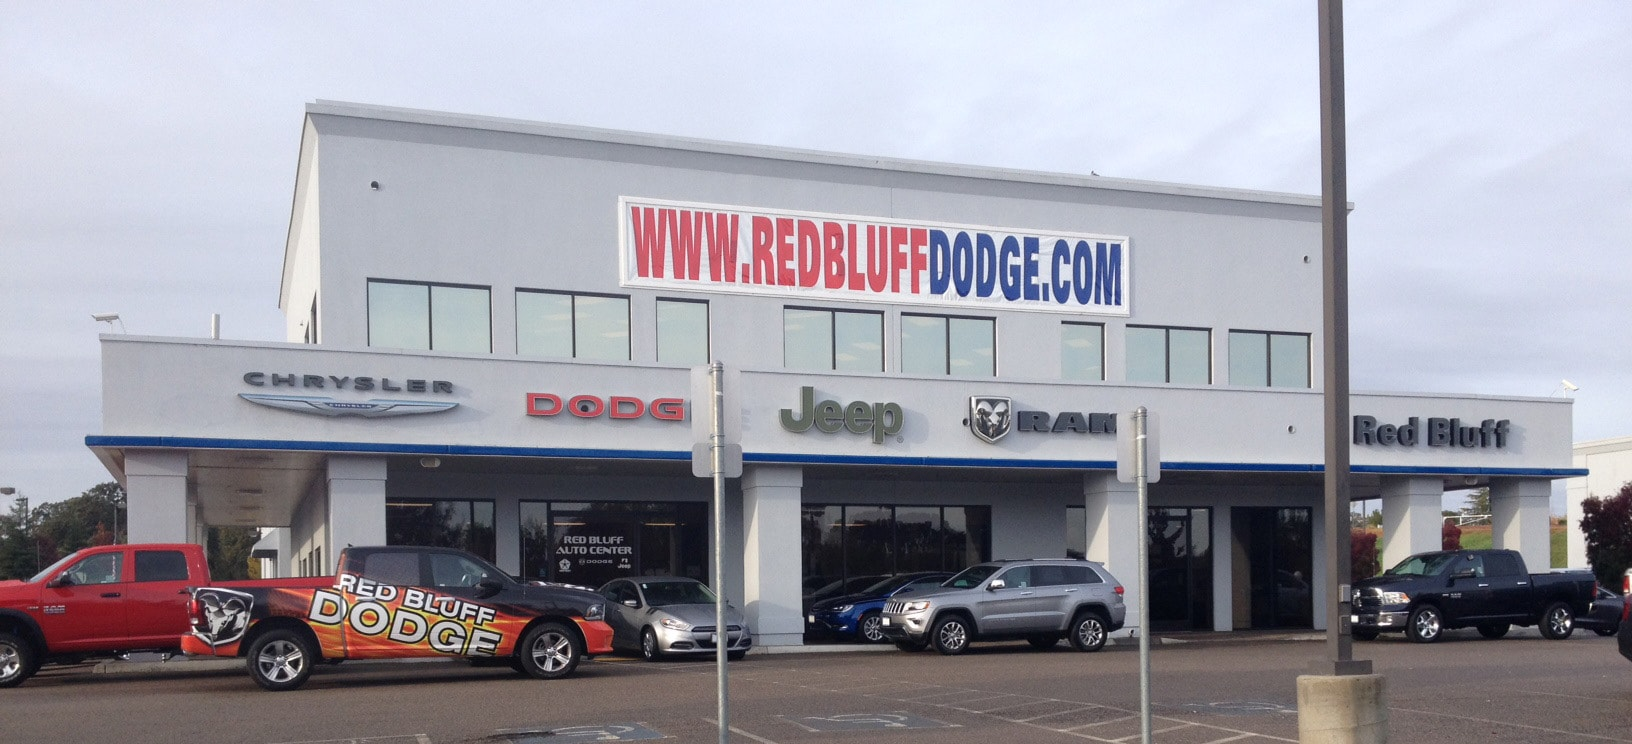 Red Bluff Dodge >> About Red Bluff Dodge Chrysler Jeep Ram Red Bluff Ca